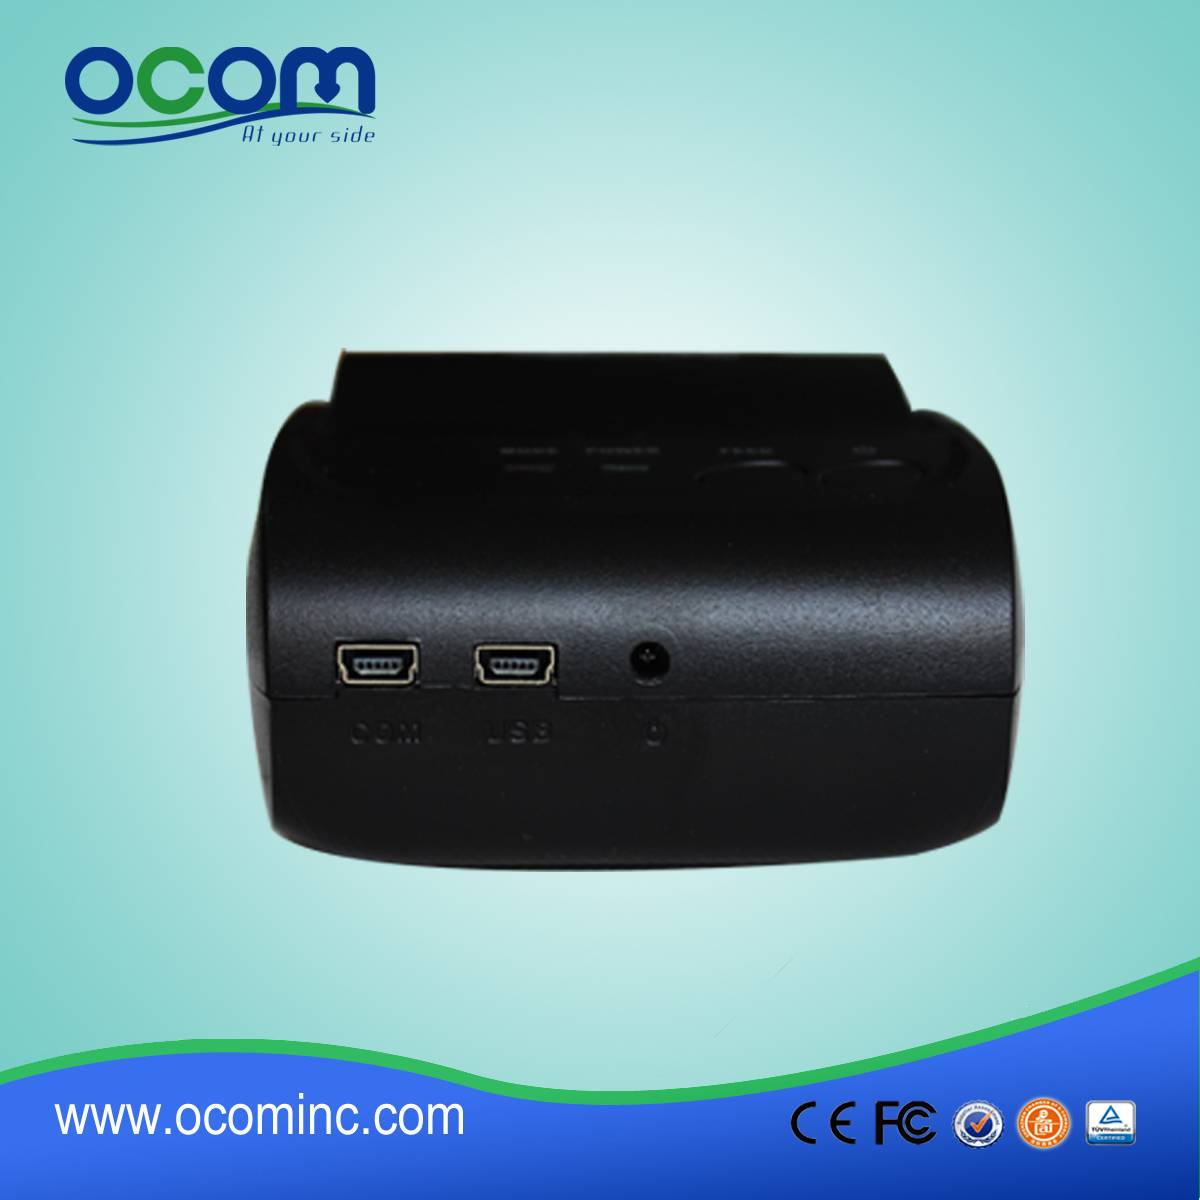 58MM portable bluetooth thermal printer support andriod